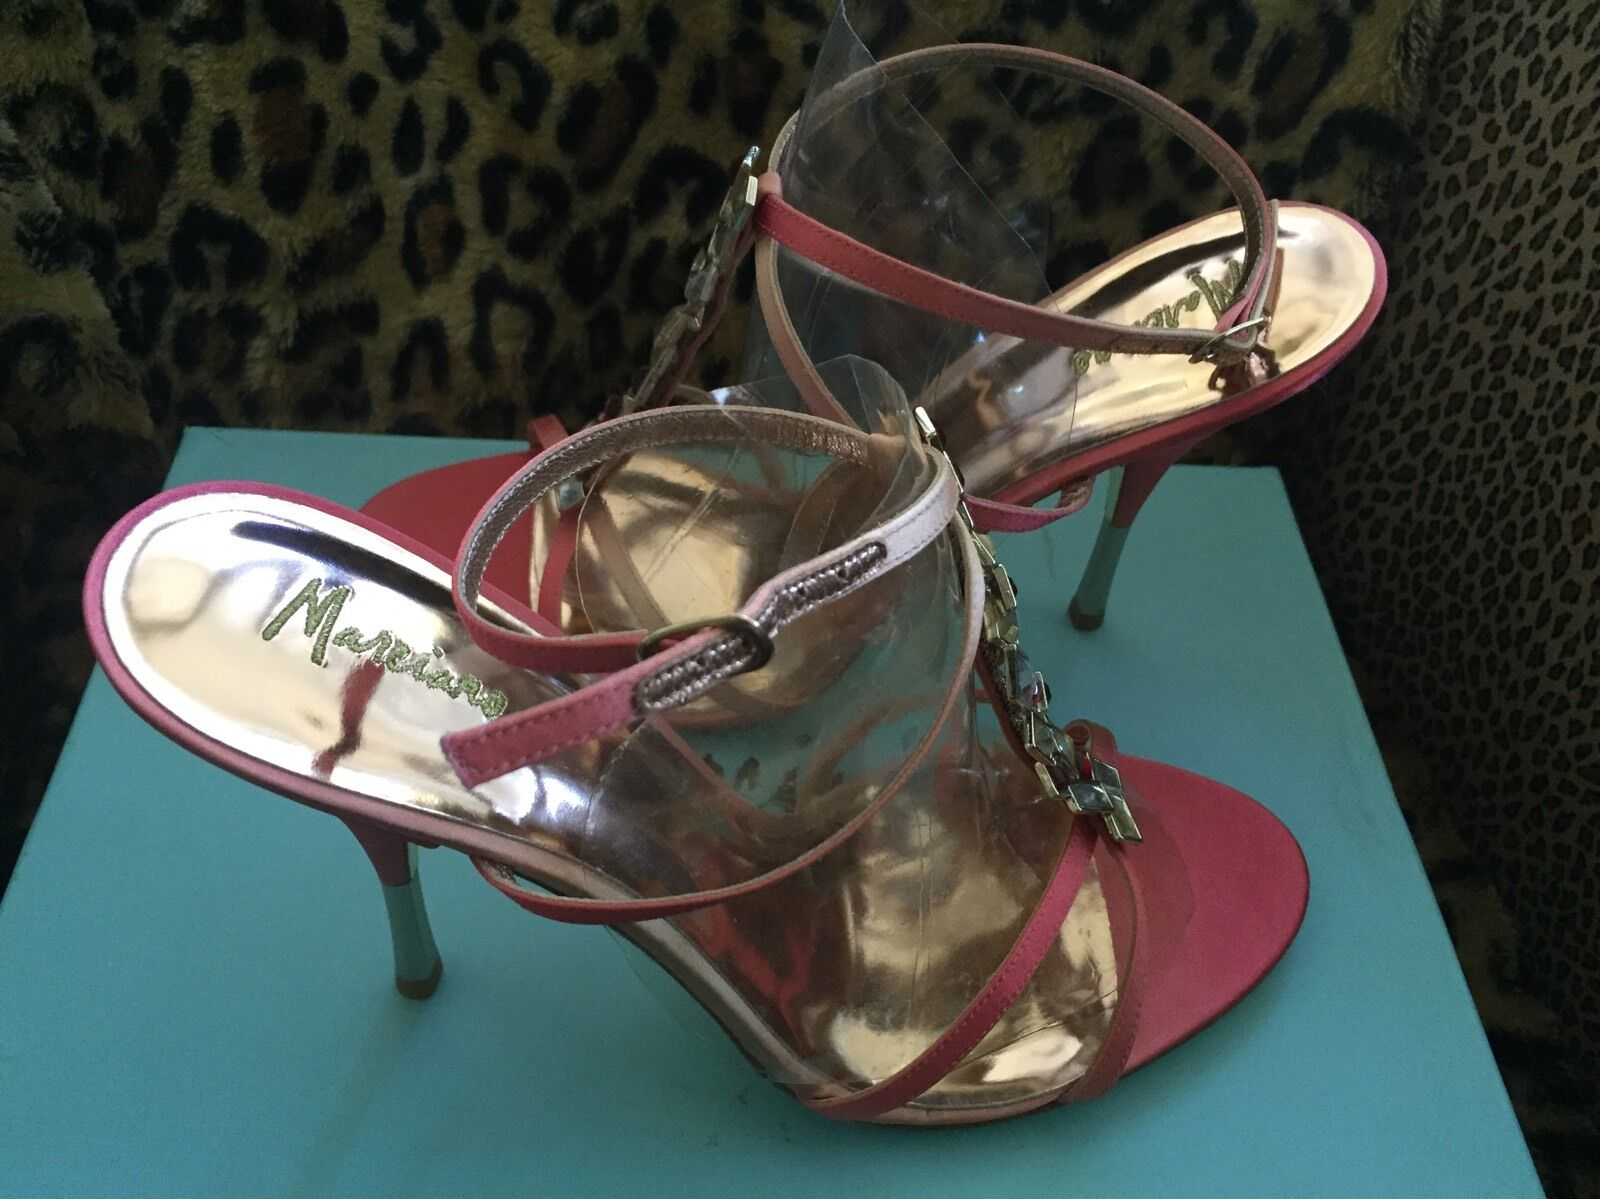 Nwt Marciano Pmtrish Satin  Jewel shoes 10 Pink